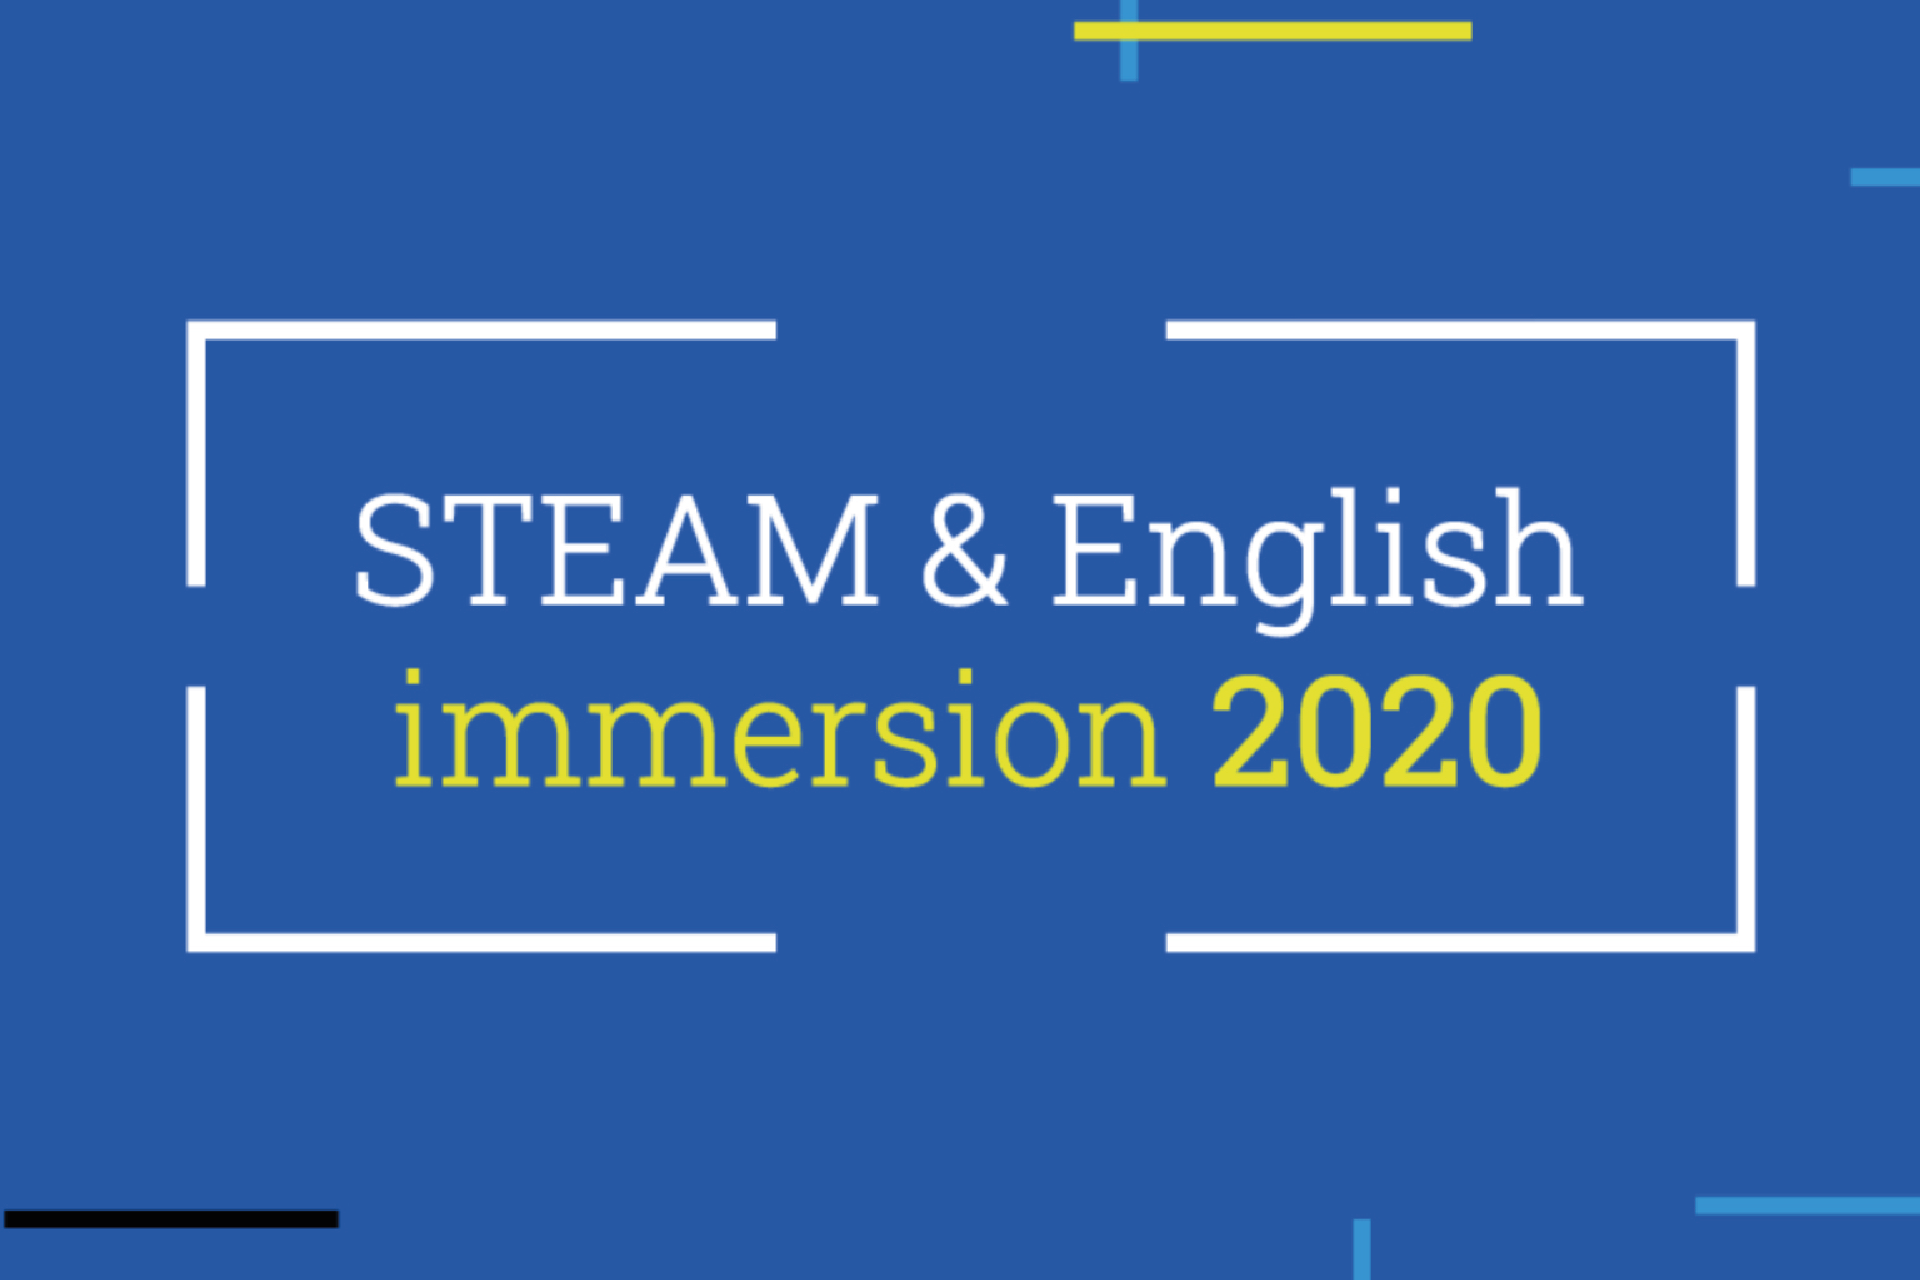 VIRTUAL STEAM AND ENGLISH IMMERSION PROGRAM BRINGS TOGHETER STUDENTS AND TEACHERS ALL OVER THE COUNTRY